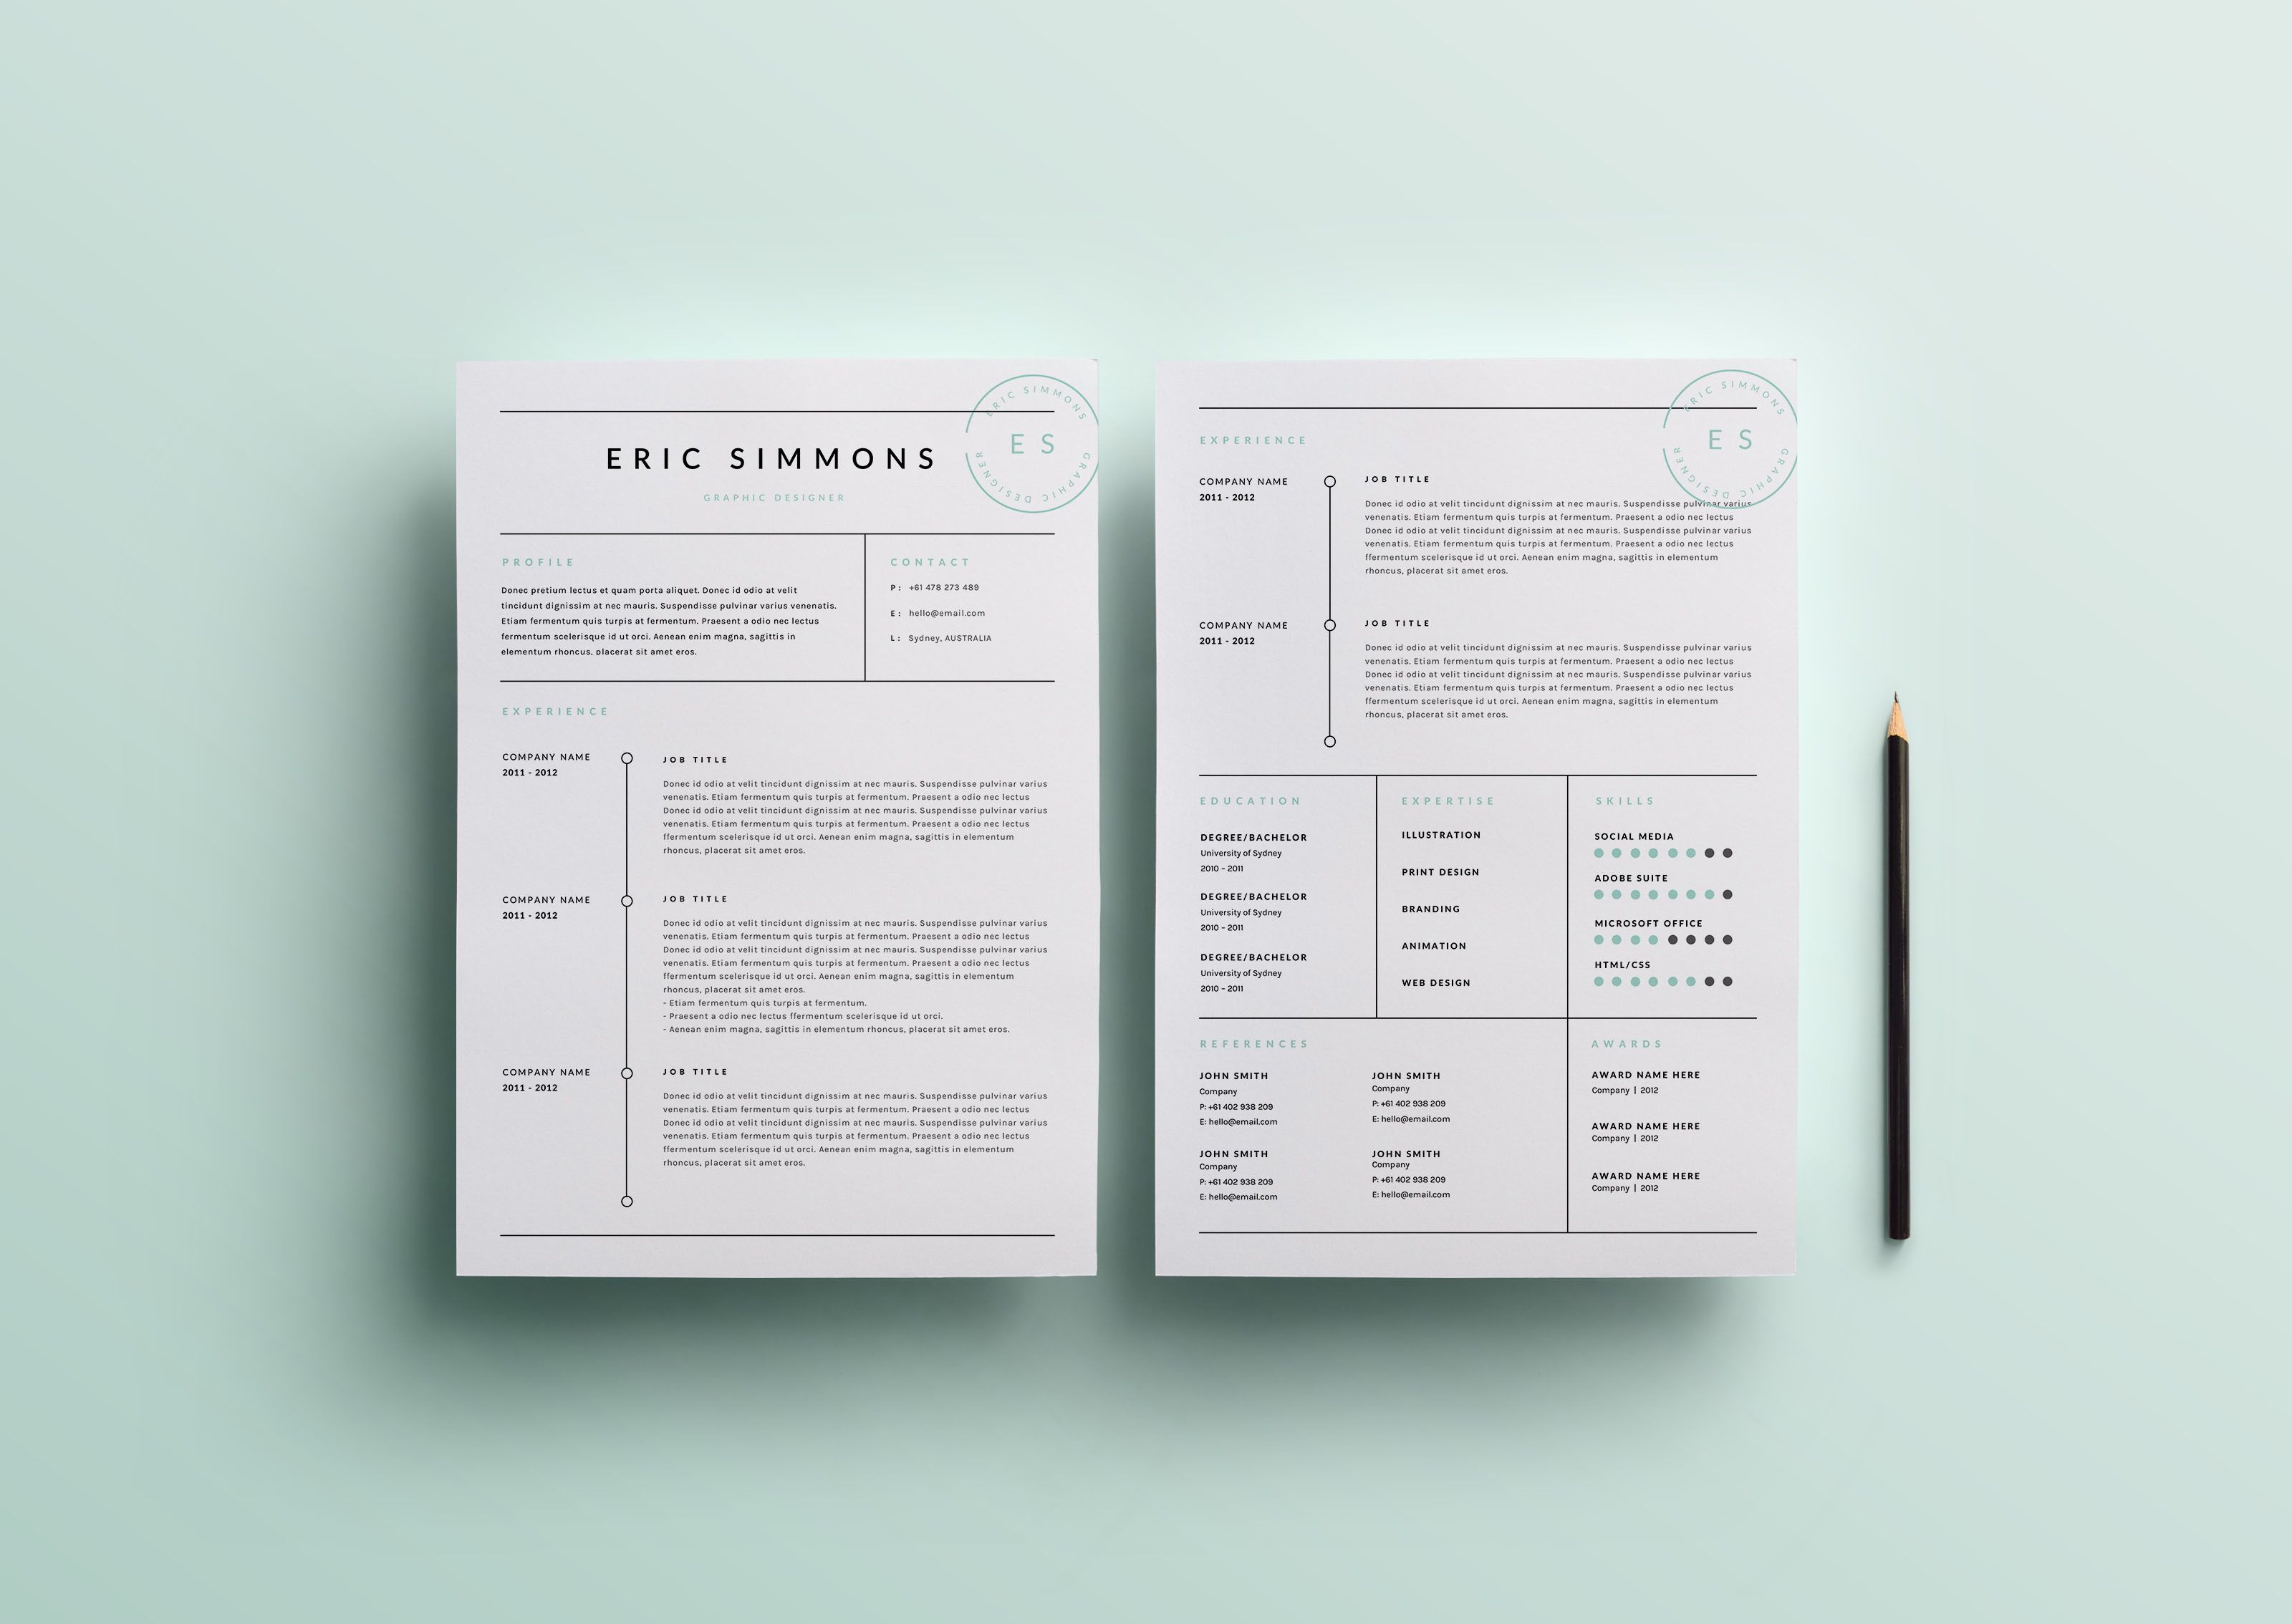 Cool 10 Envelope Template Big 1099 Excel Template Round 2 Column Website Template 2014 Blank Calendar Template Old 2015 Calendars Templates Green2015 Resume Keywords 3 Page Resume Template | INDD   DOCX By BlackDotResumes On ..